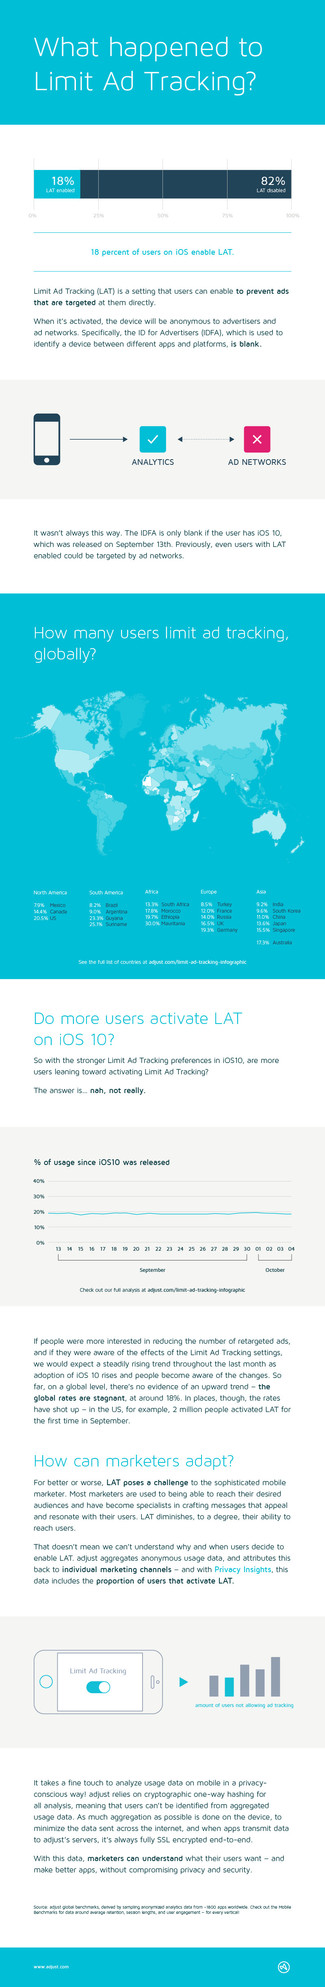 US Limit Ad Tracking Opt-Out Highest in the West, Growing to 20% in the US Since iOS 10 Release